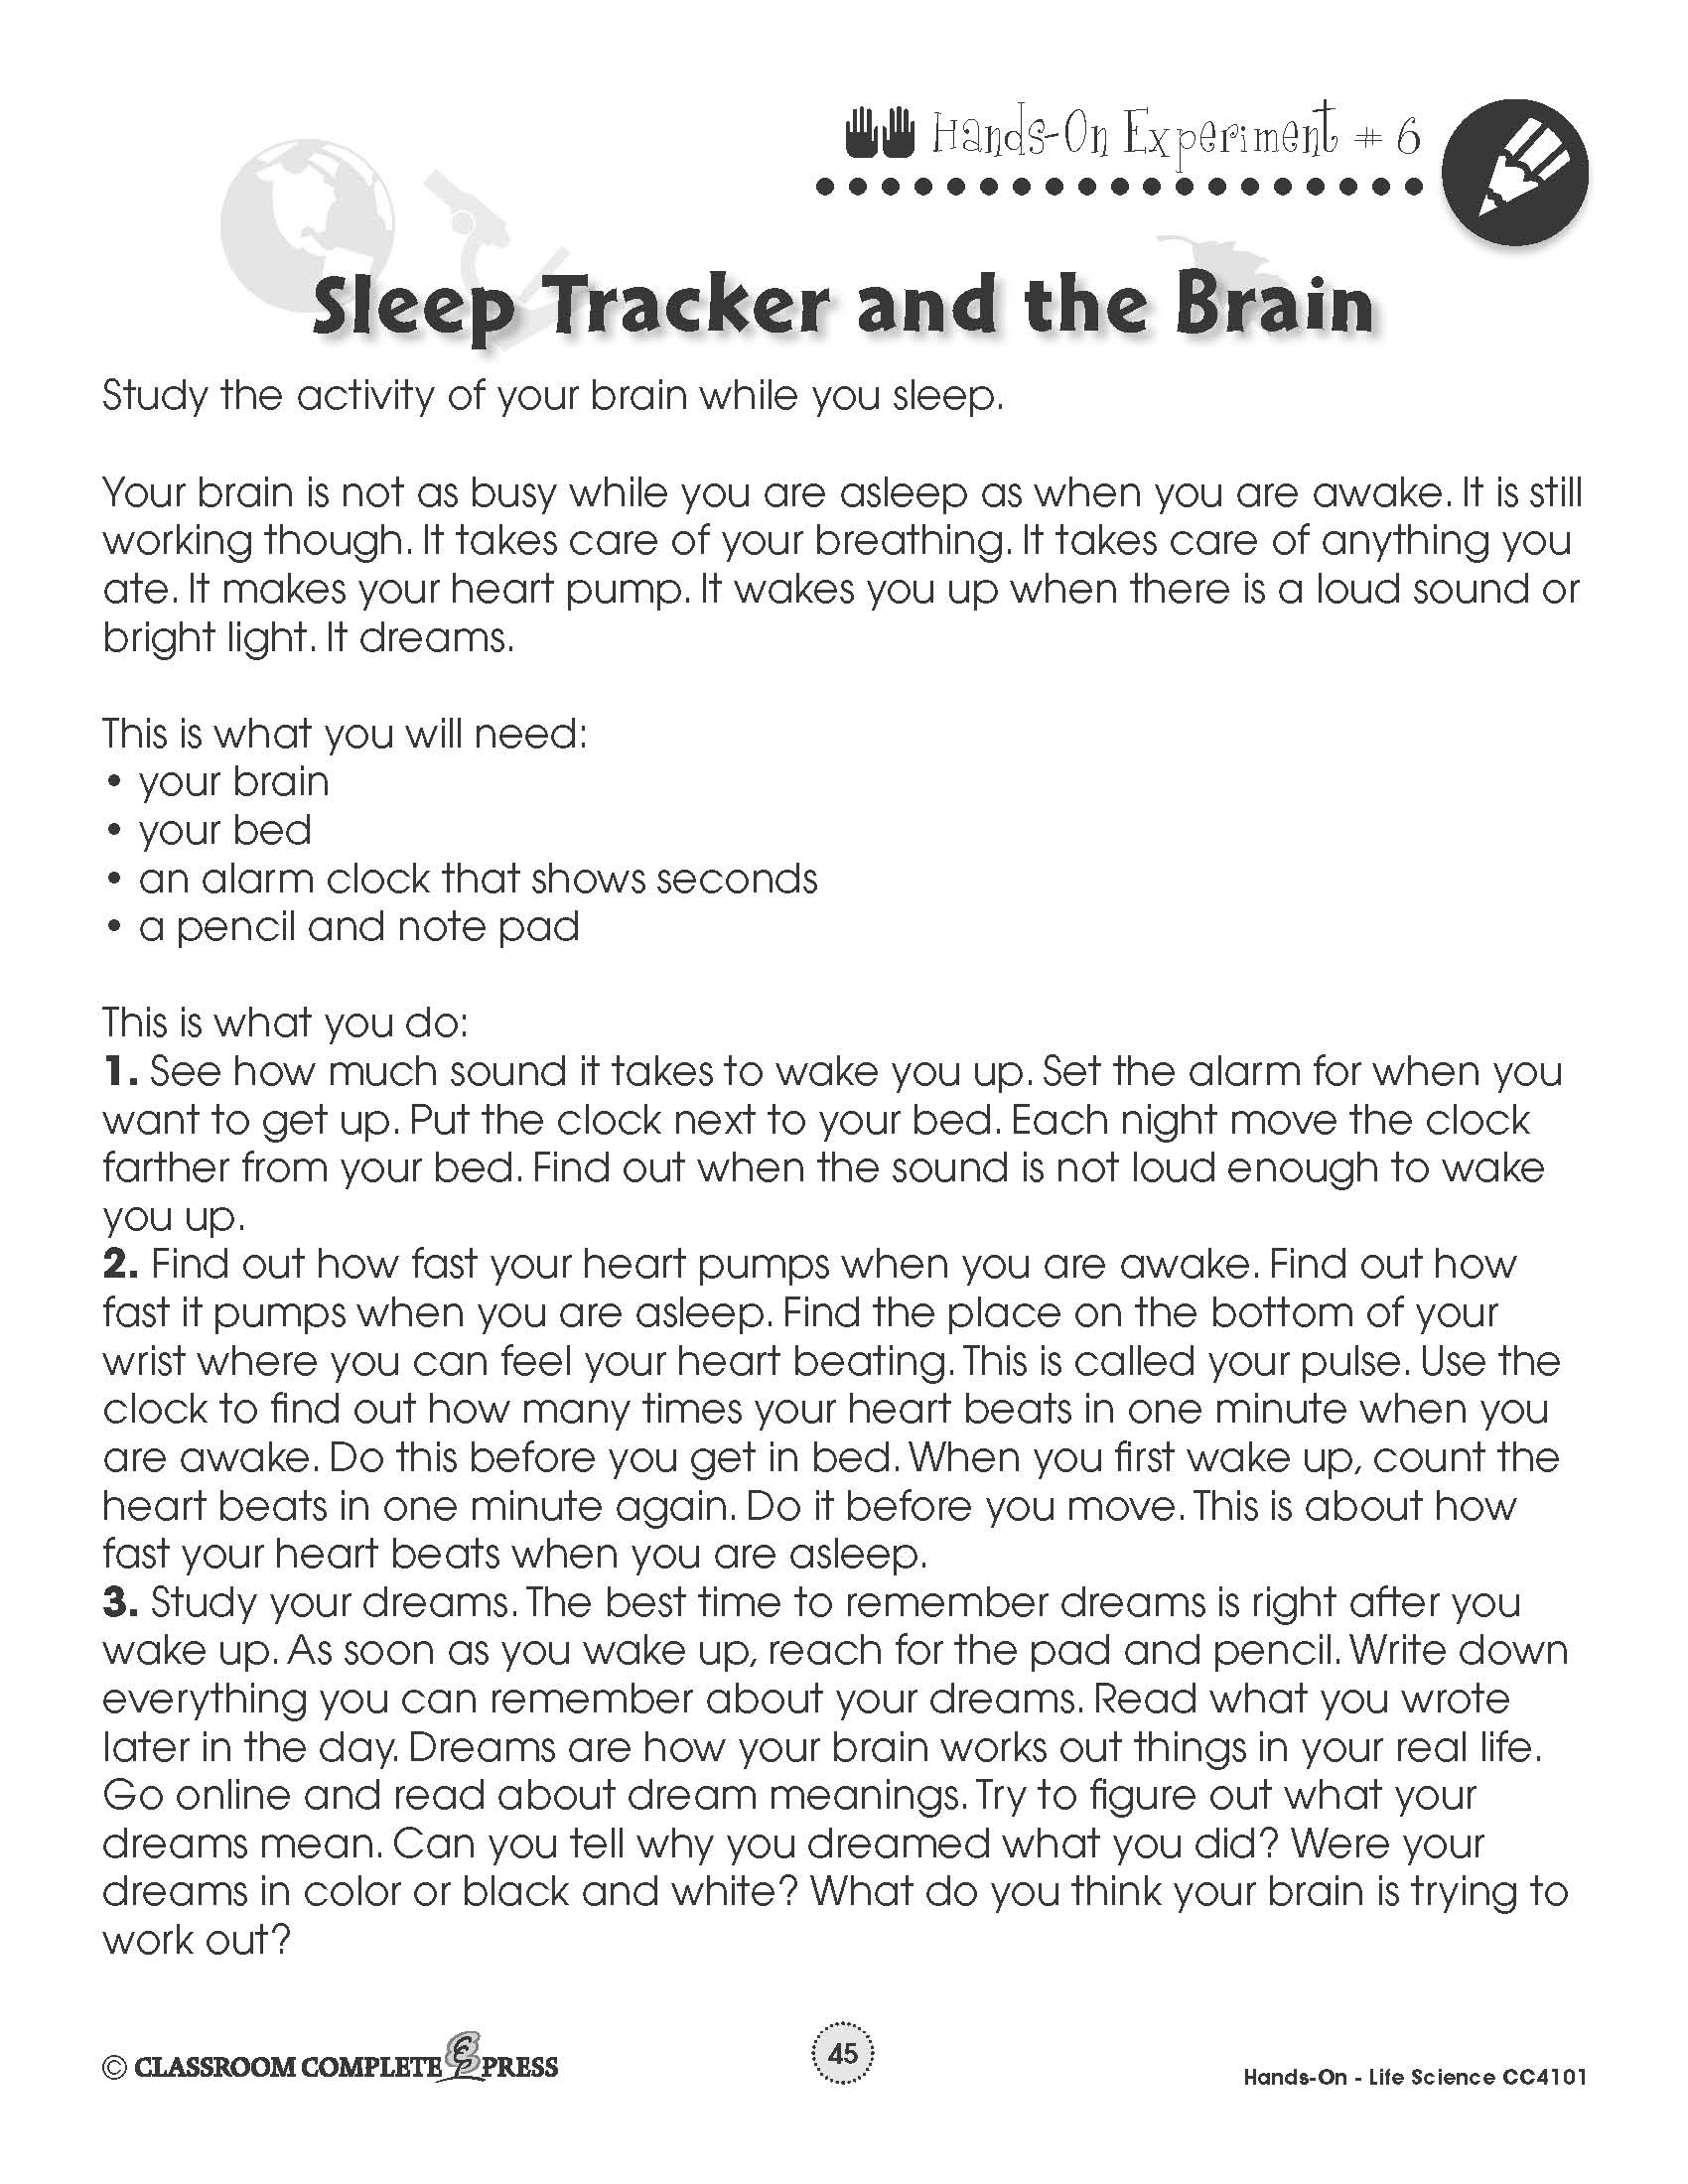 Life Science Sleep Tracker